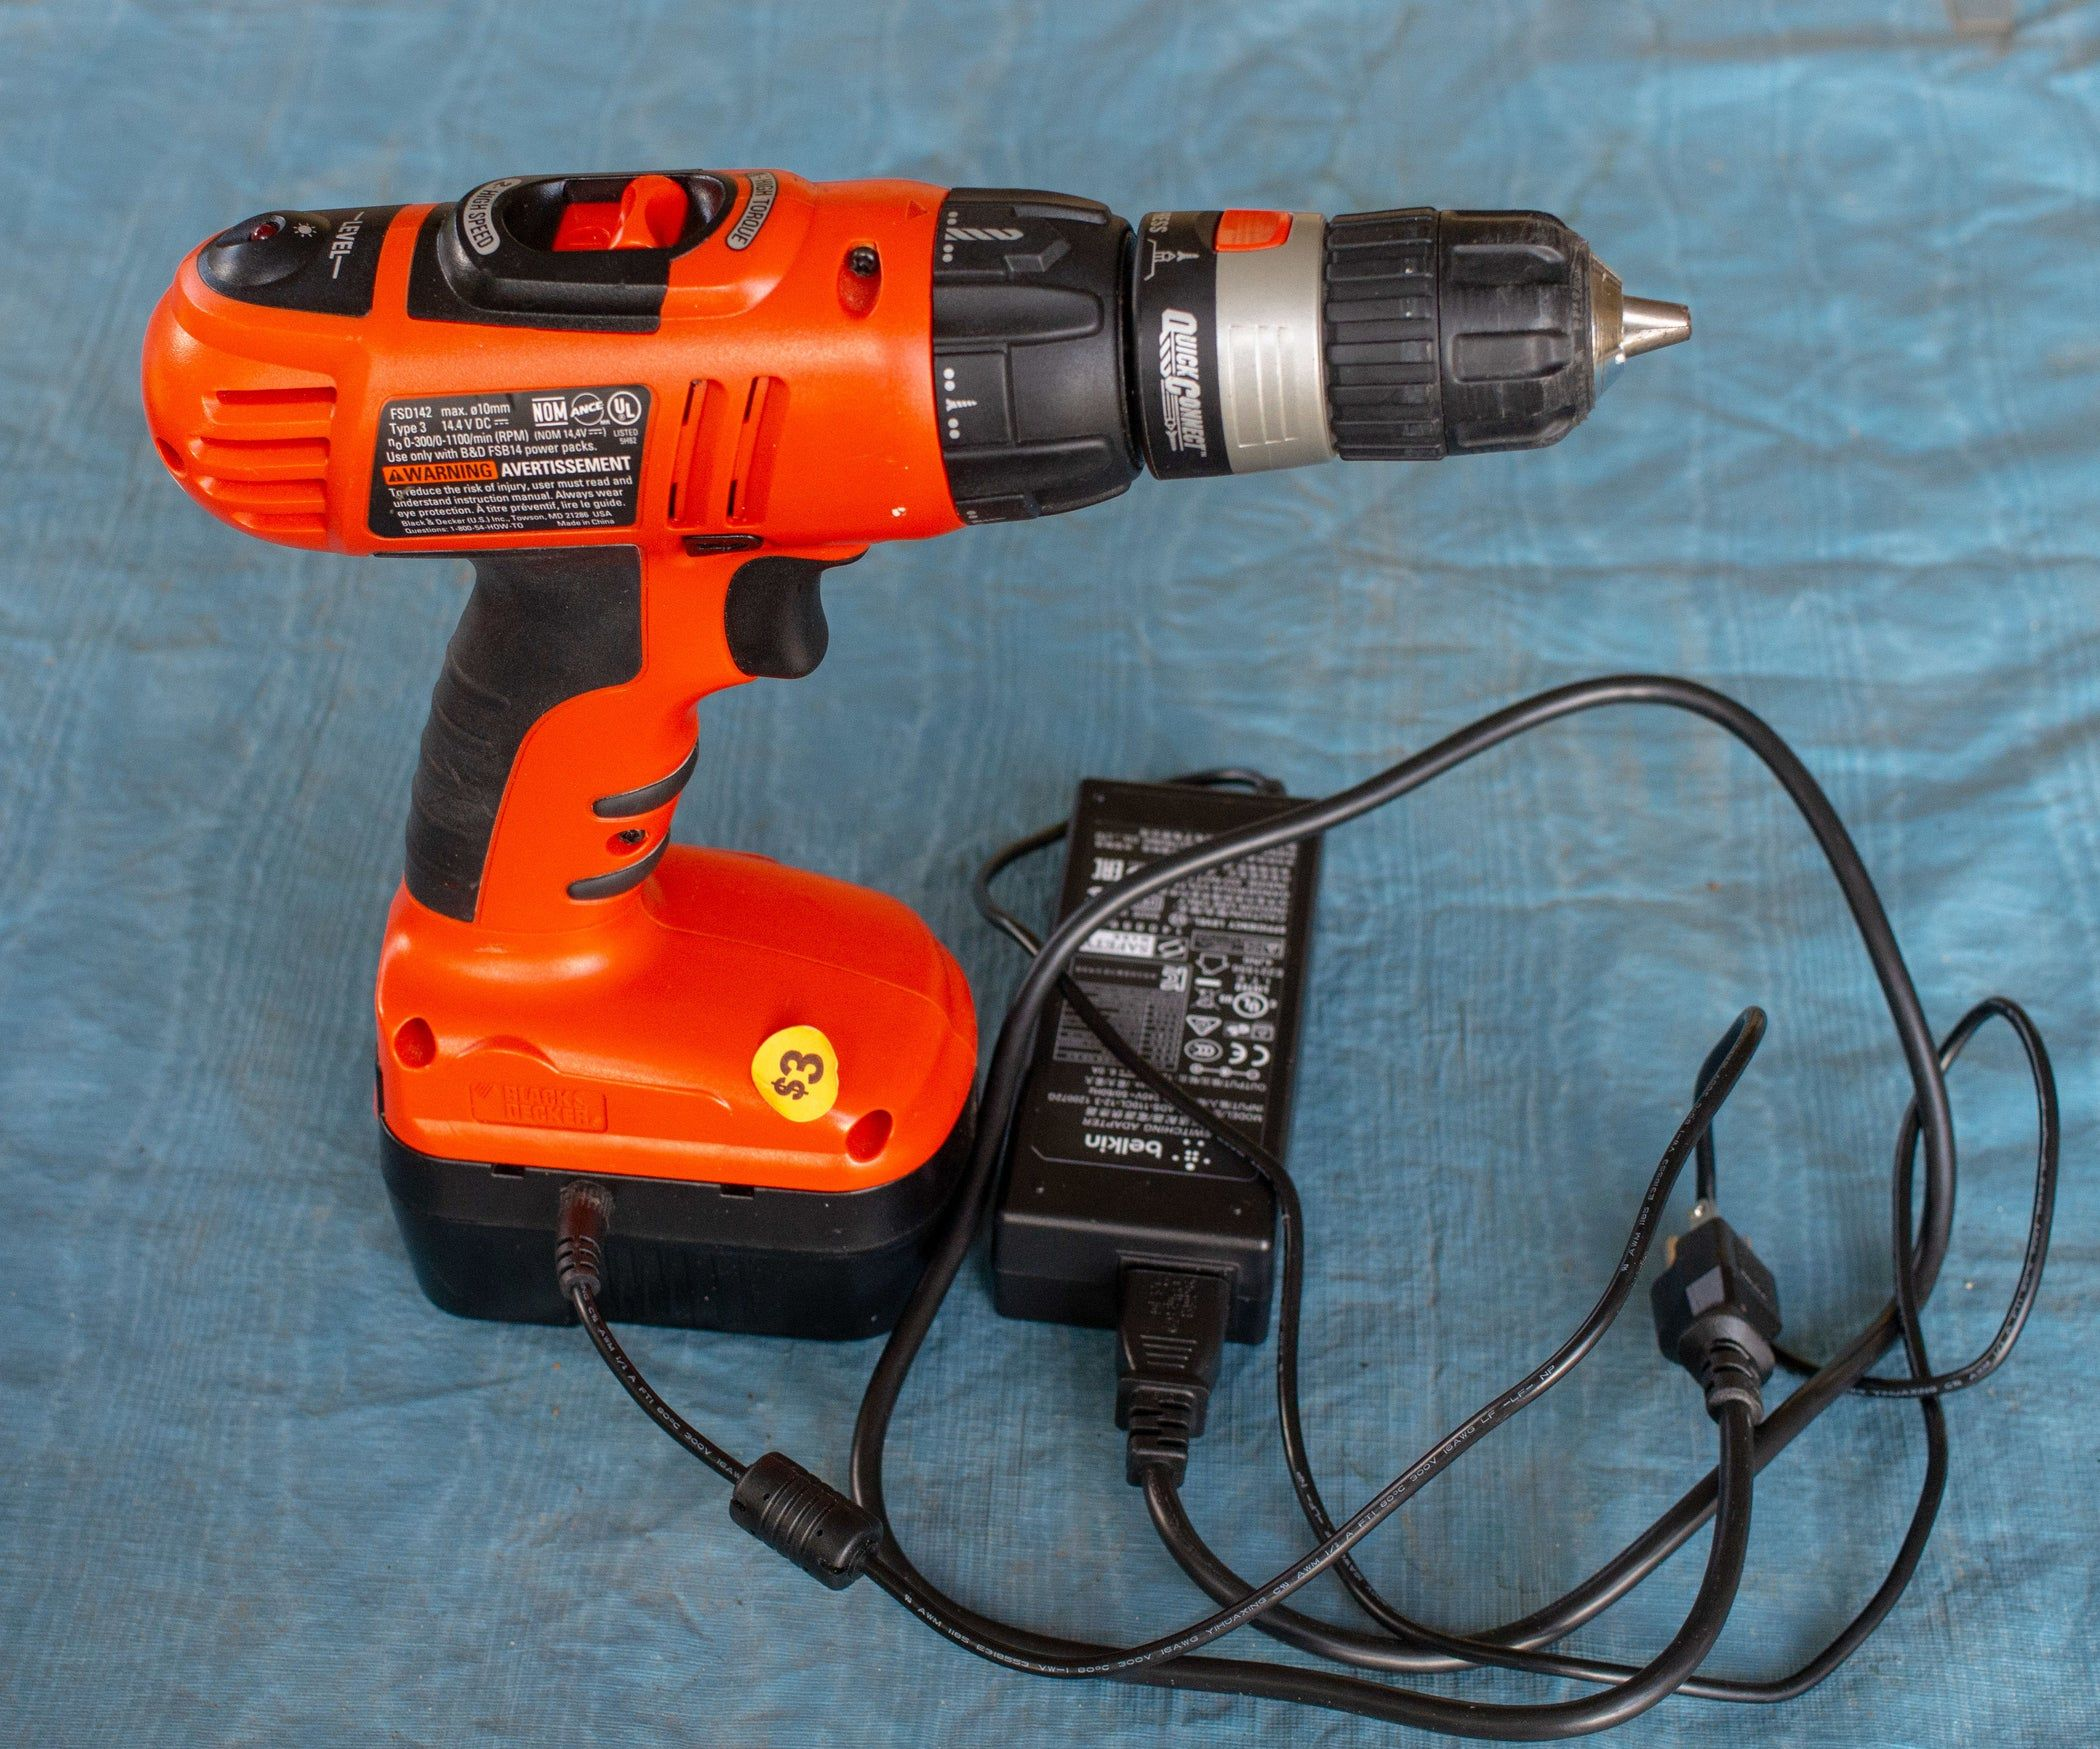 Replacement Of Nicd Battery With External Power Supply Cordless Drill Cordless Drill Batteries Drill